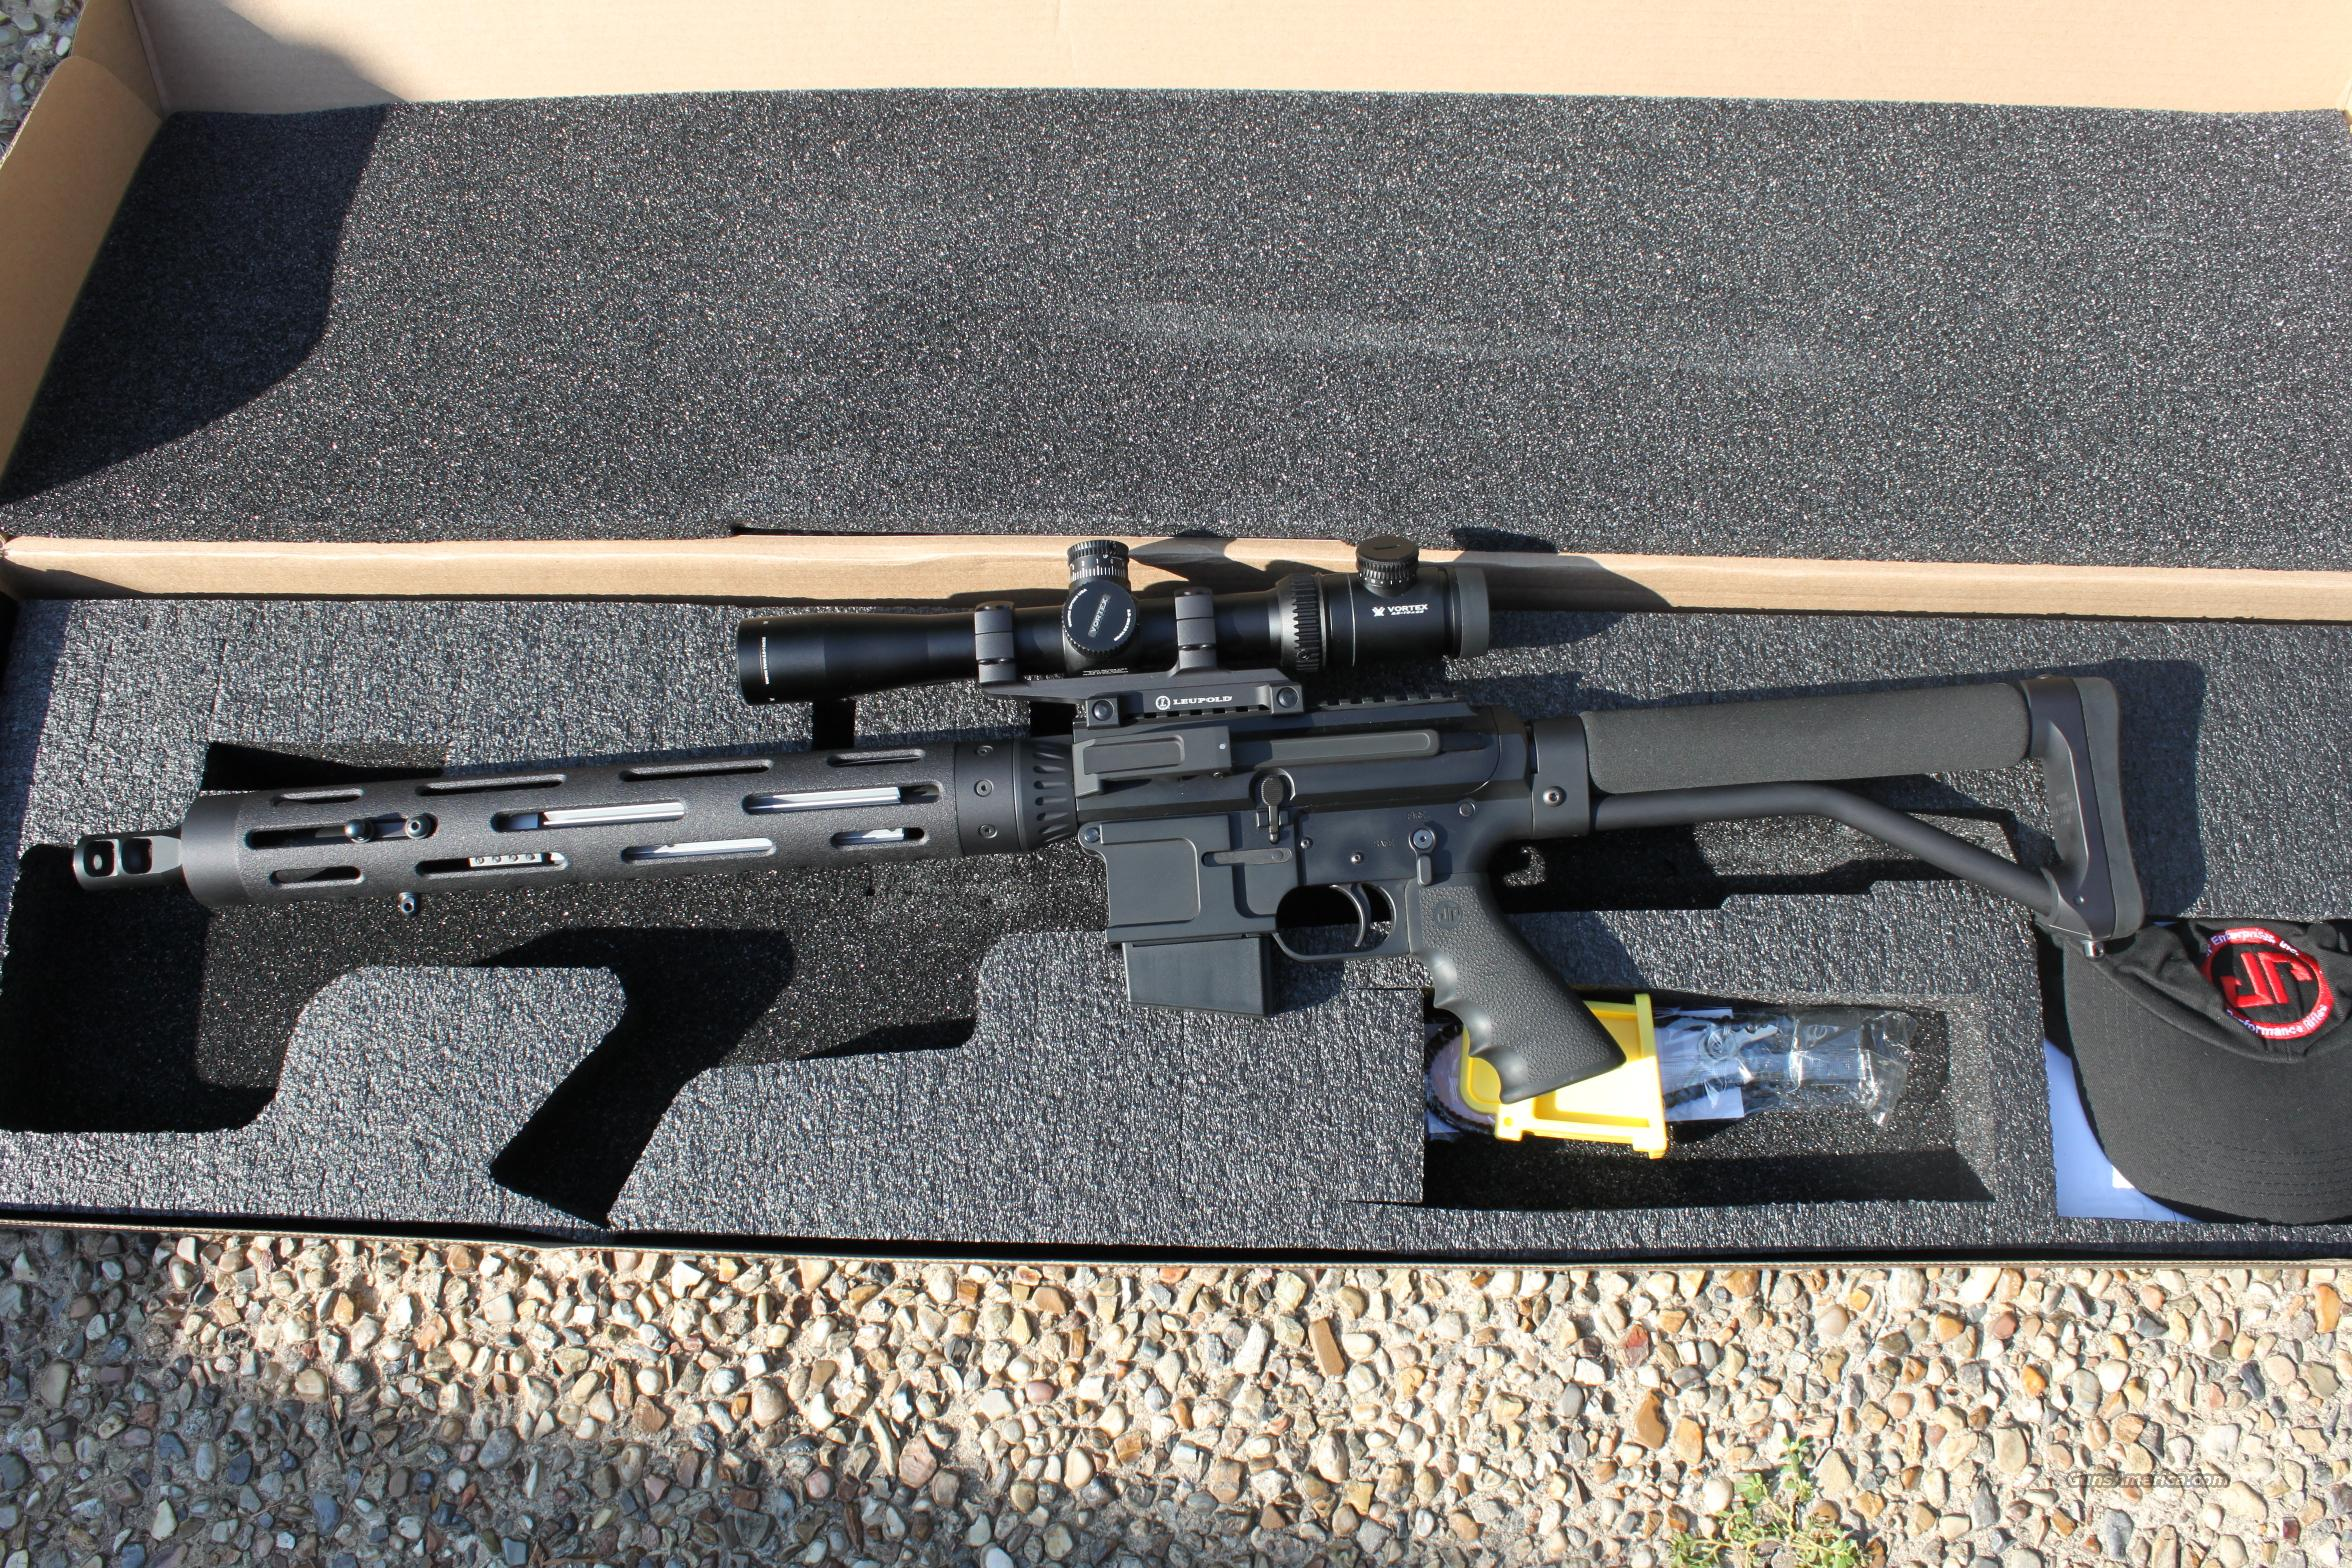 JP Enterprises SCR-11 .223/5.56 like new w/ accessories  Guns > Rifles > AR-15 Rifles - Small Manufacturers > Complete Rifle